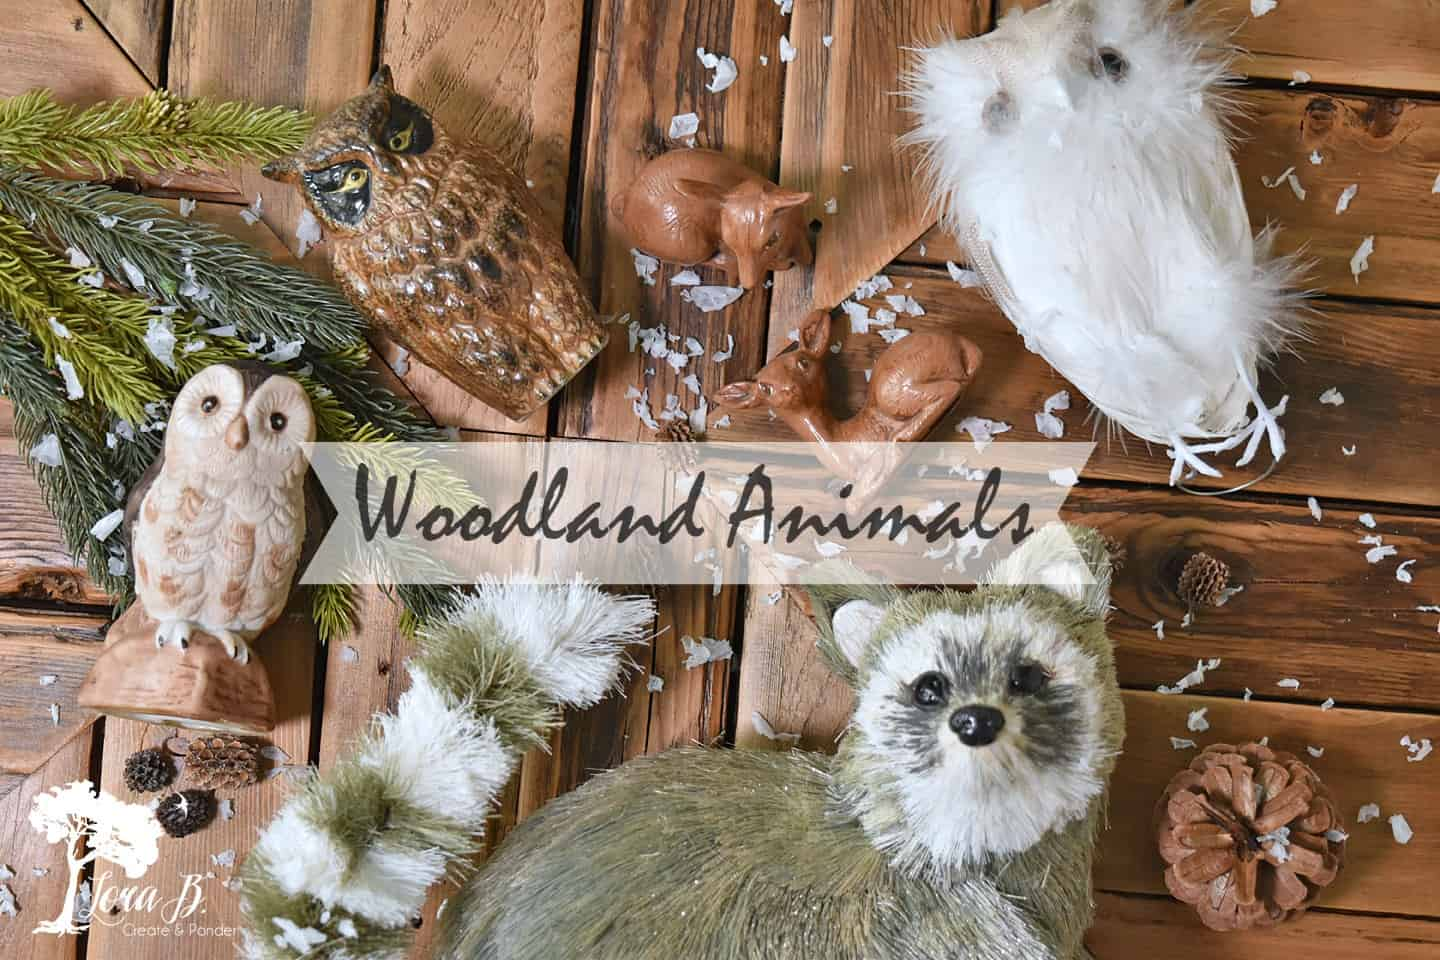 Woodland animal figures